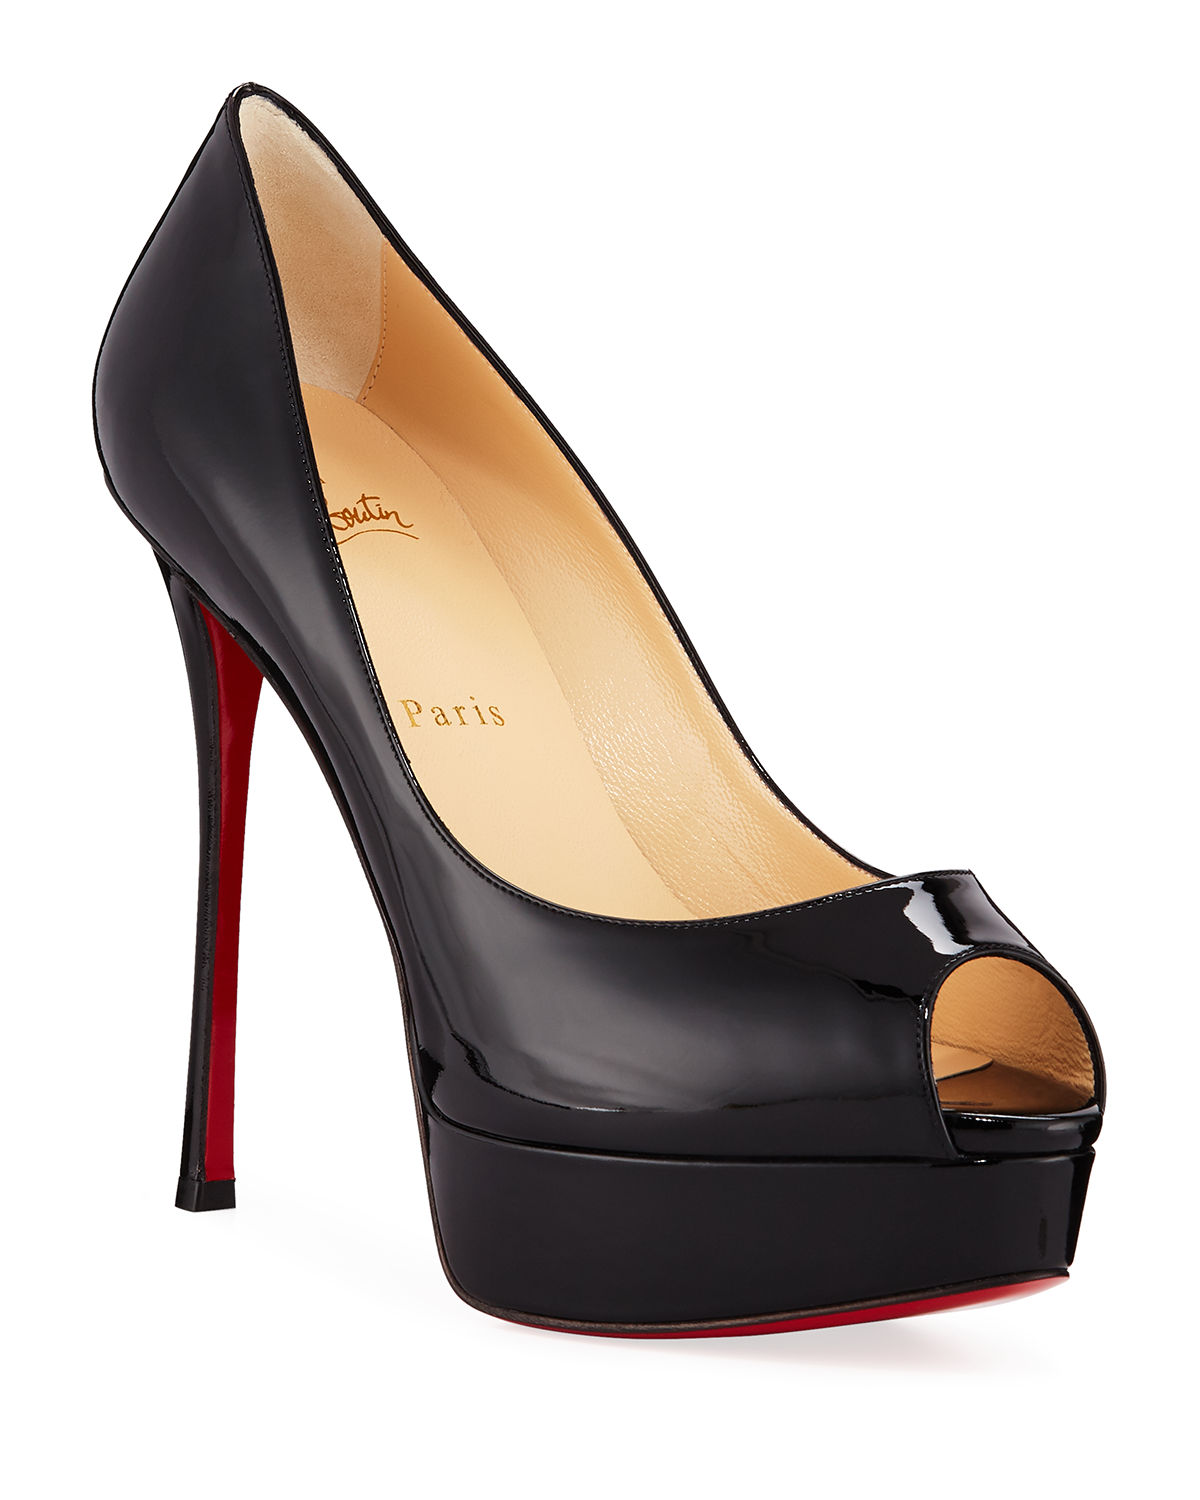 7a54083fba07 Christian Louboutin Fetish Peep-Toe Platform Red Sole Pump